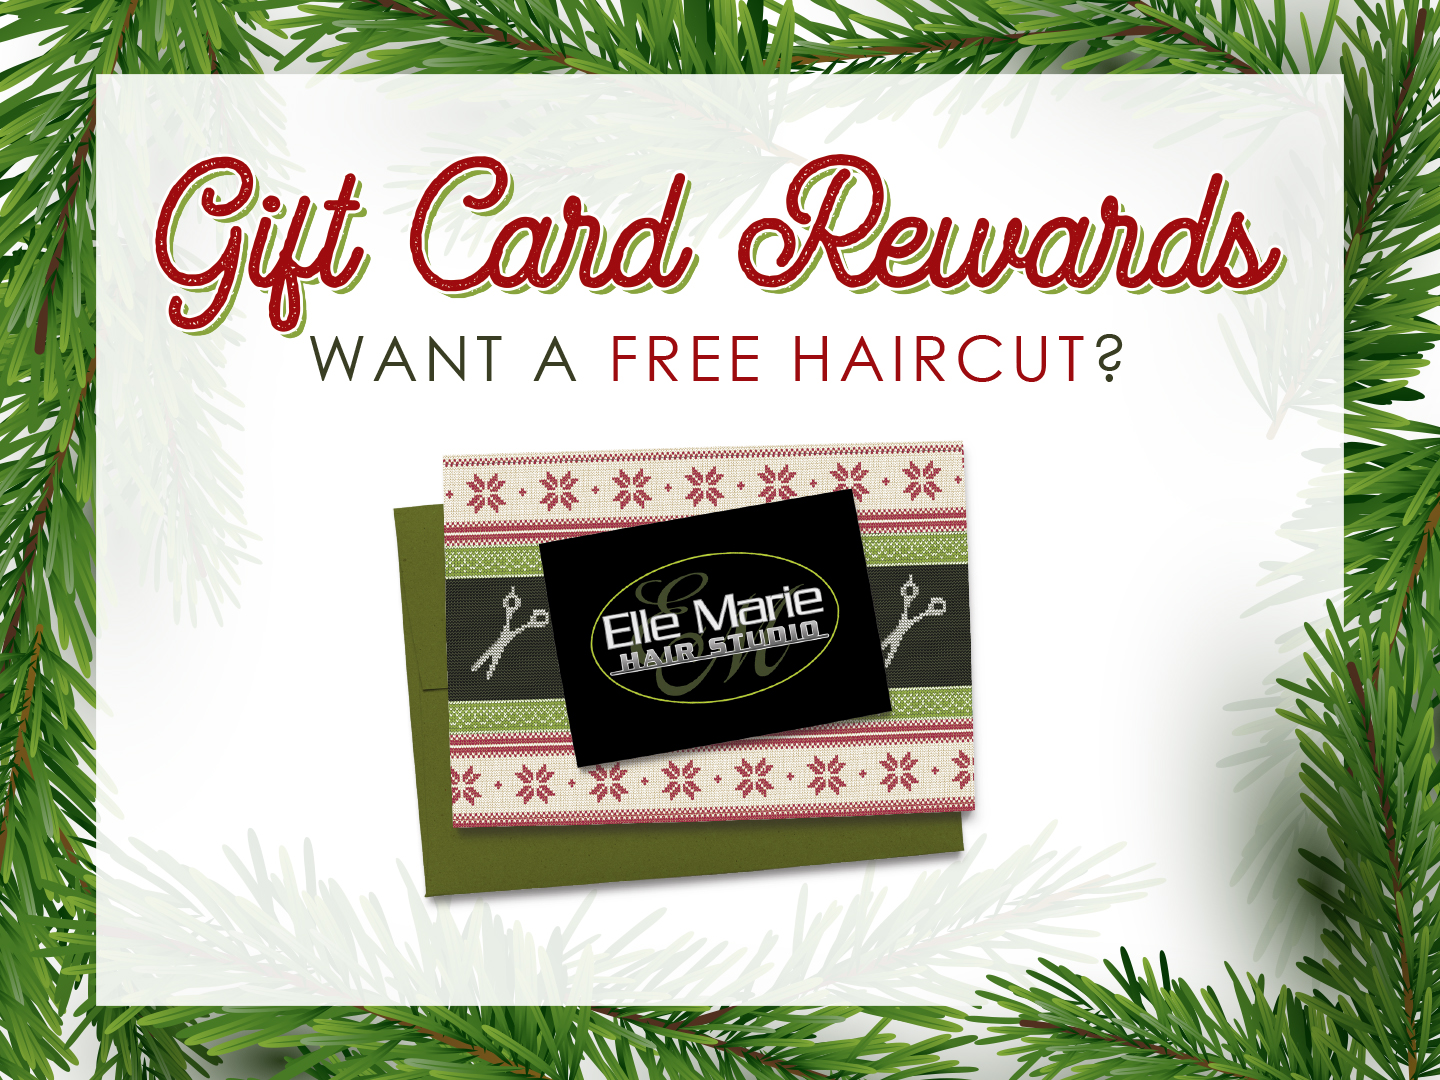 Elle Marie Hair Studio Gift Card Rewards